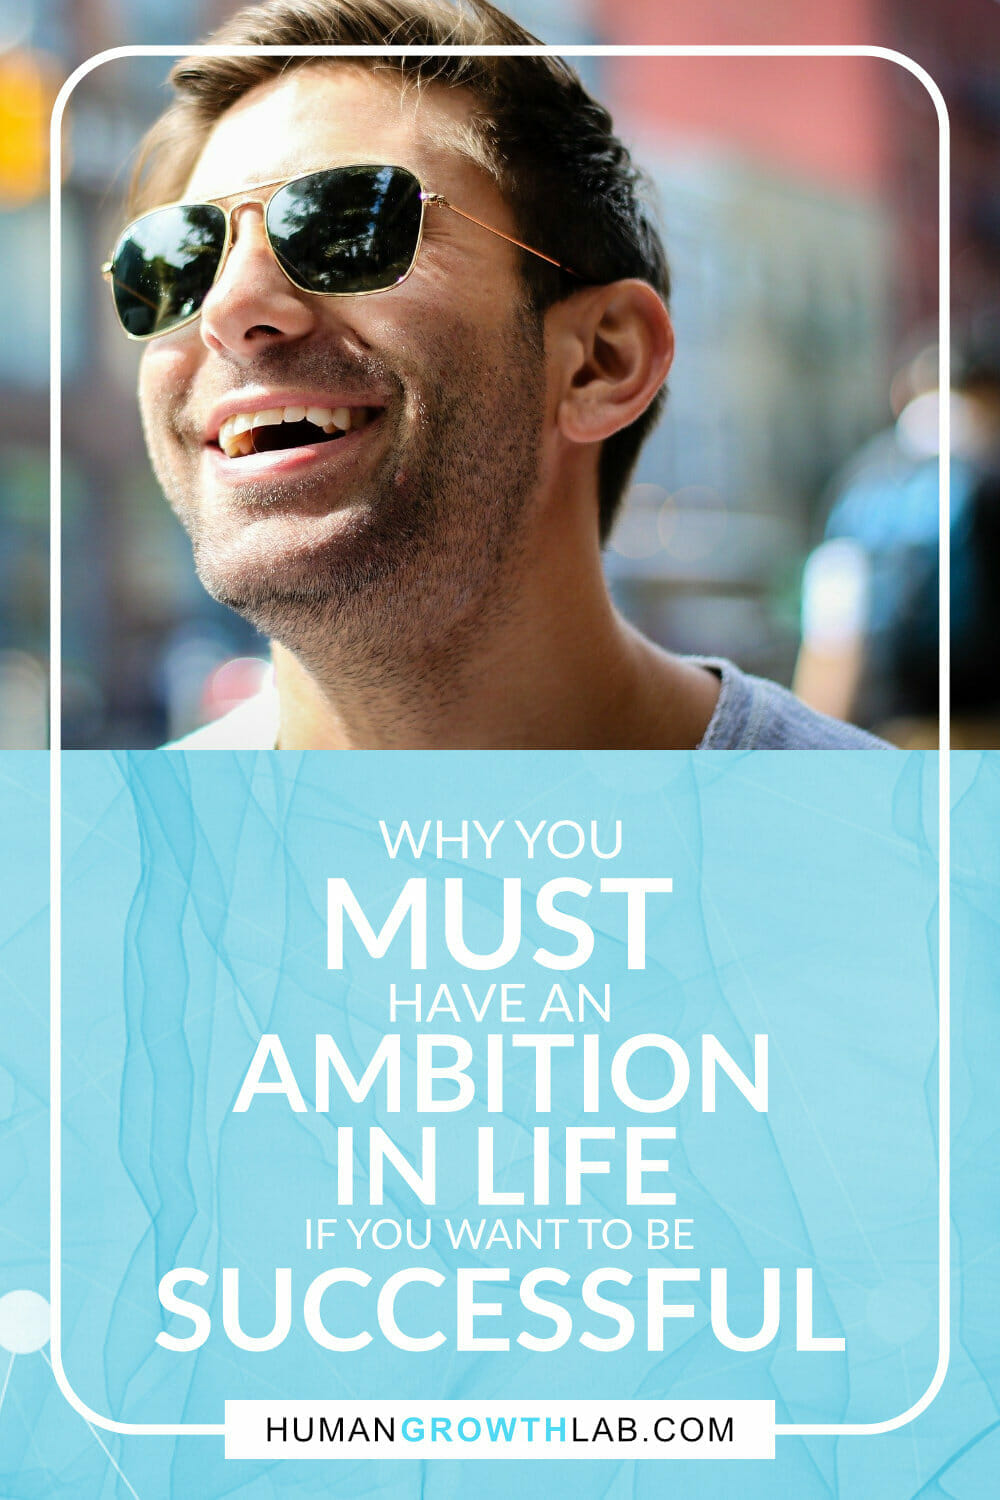 My Ambition in Life: An Essay via @humangrowthlab